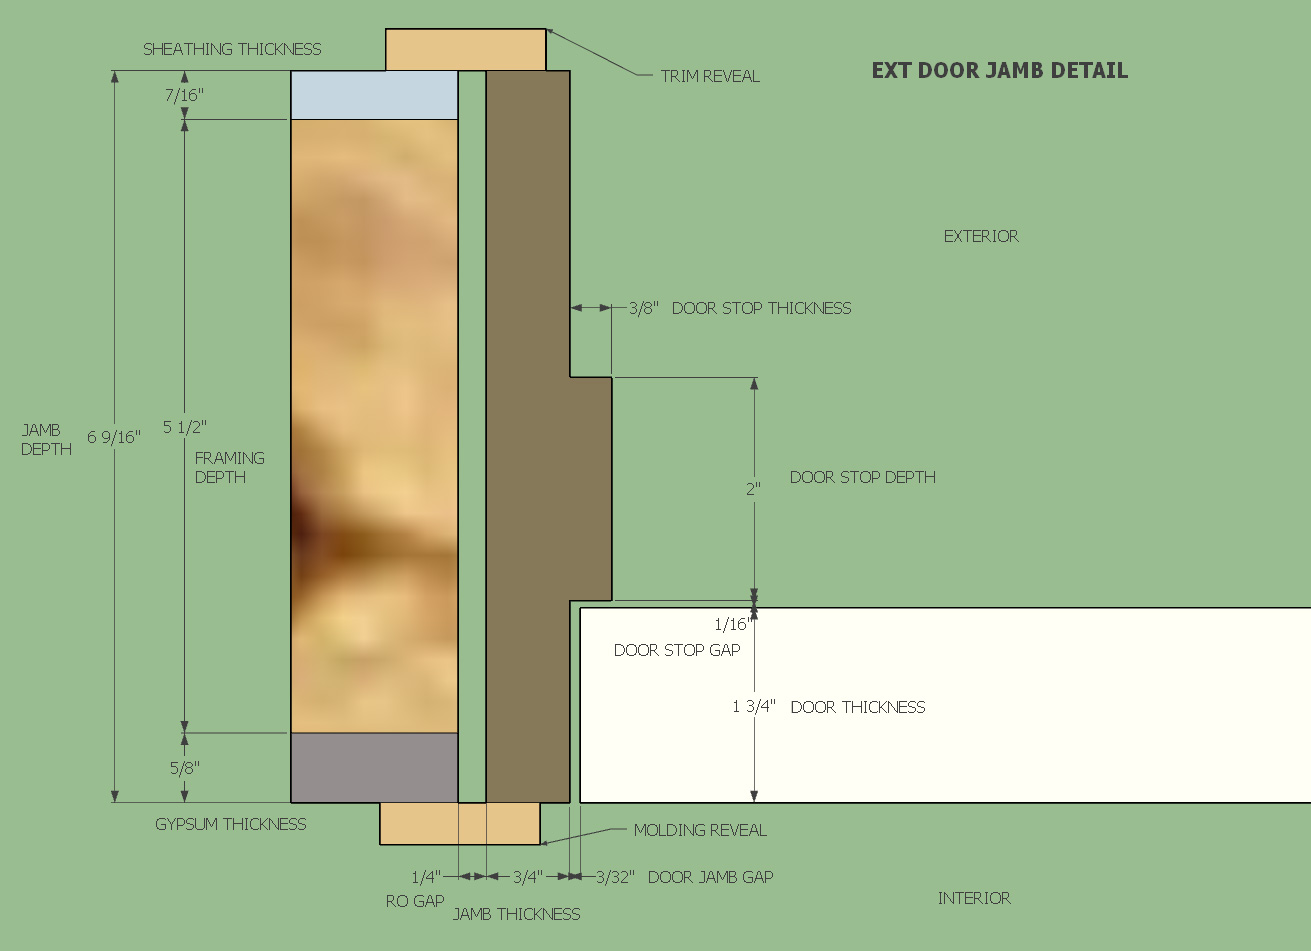 Here Are The Parameters For The Door Jamb Detail: